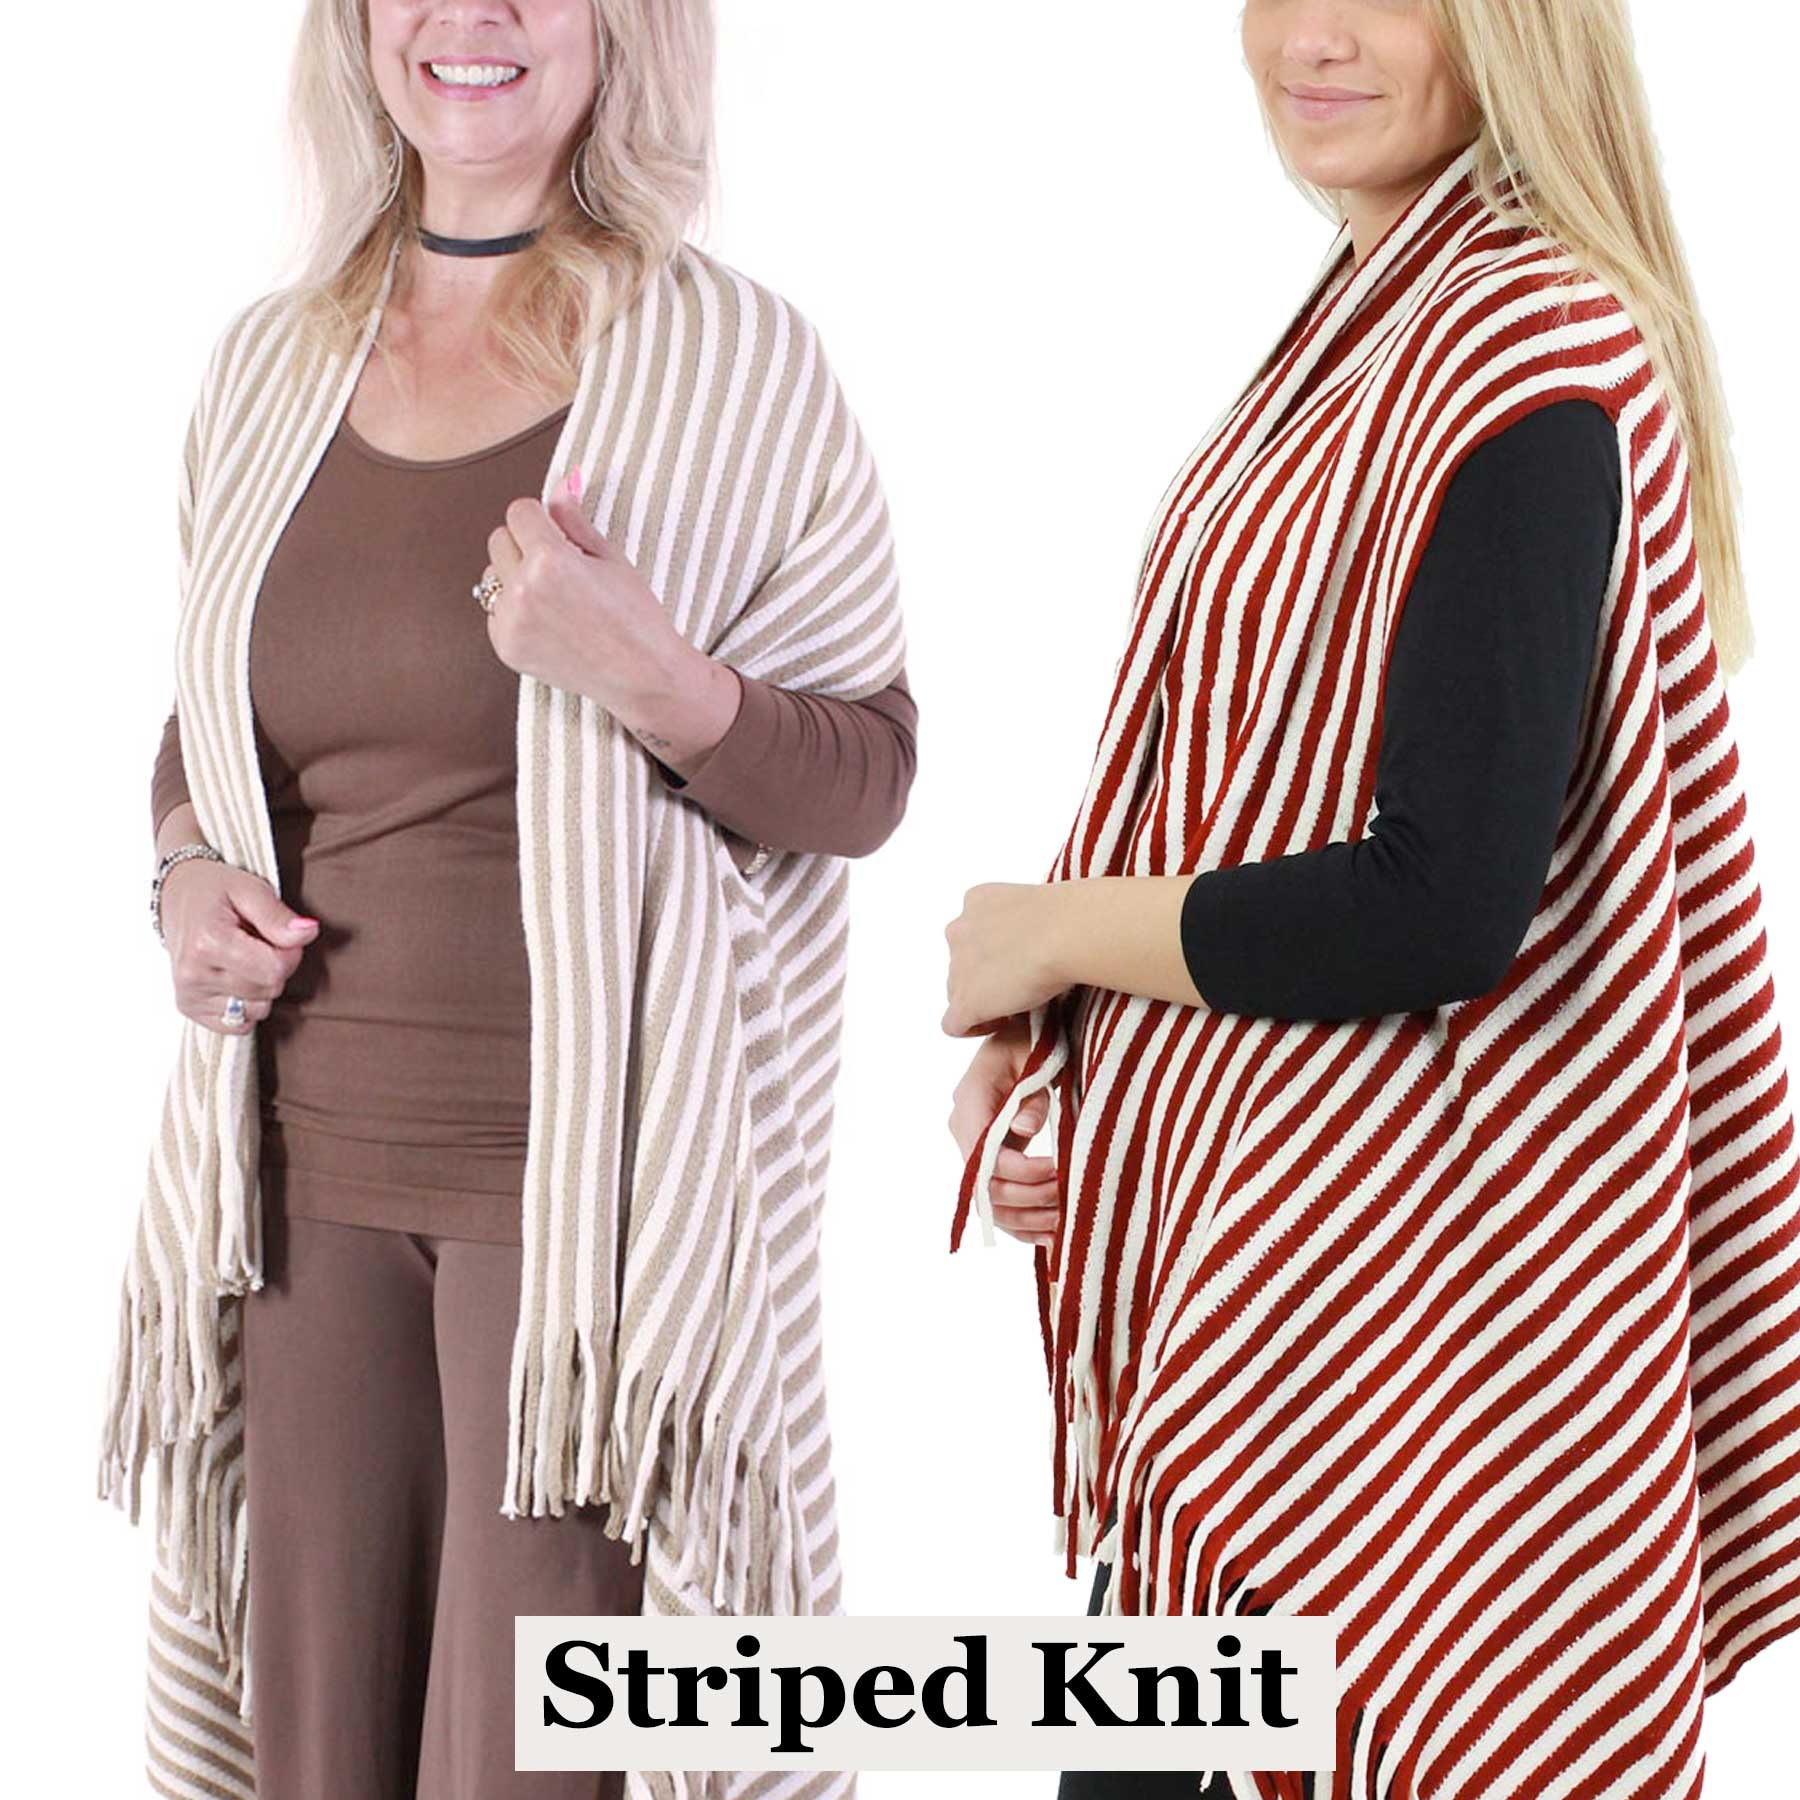 Vests - Knit Striped 9182